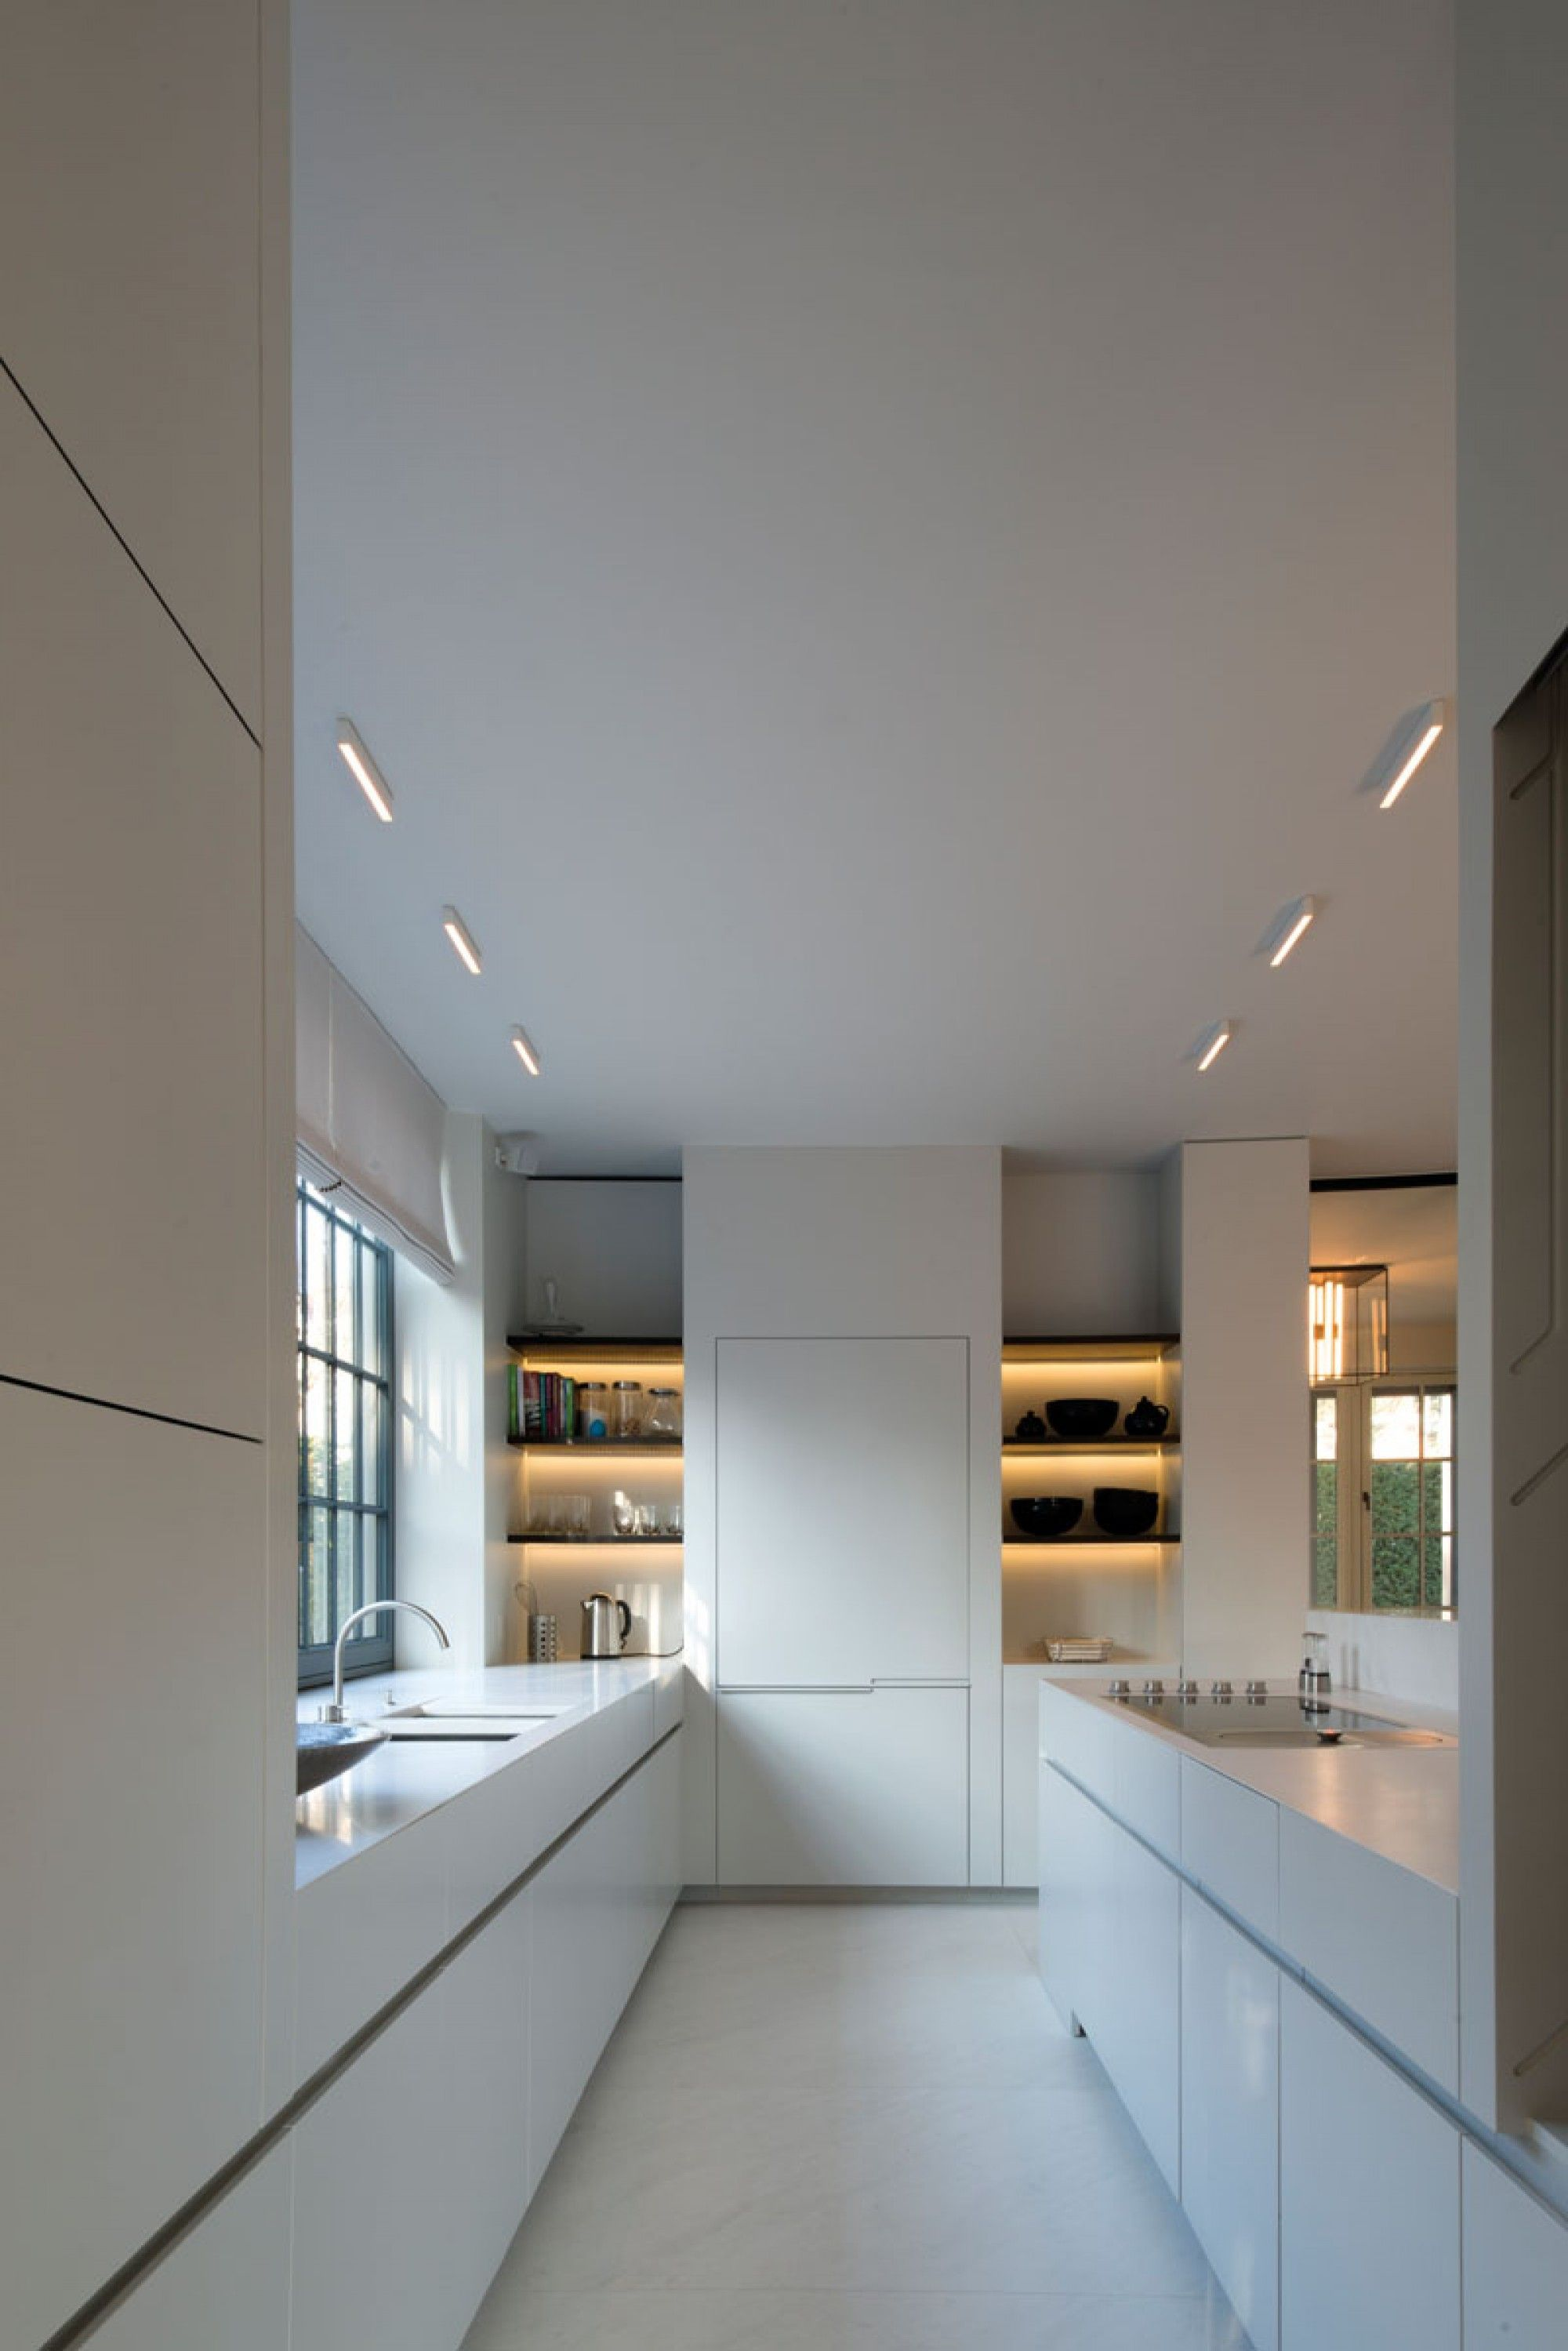 The 20 Best Ideas for Modern Kitchen Design #minimalistkitchen